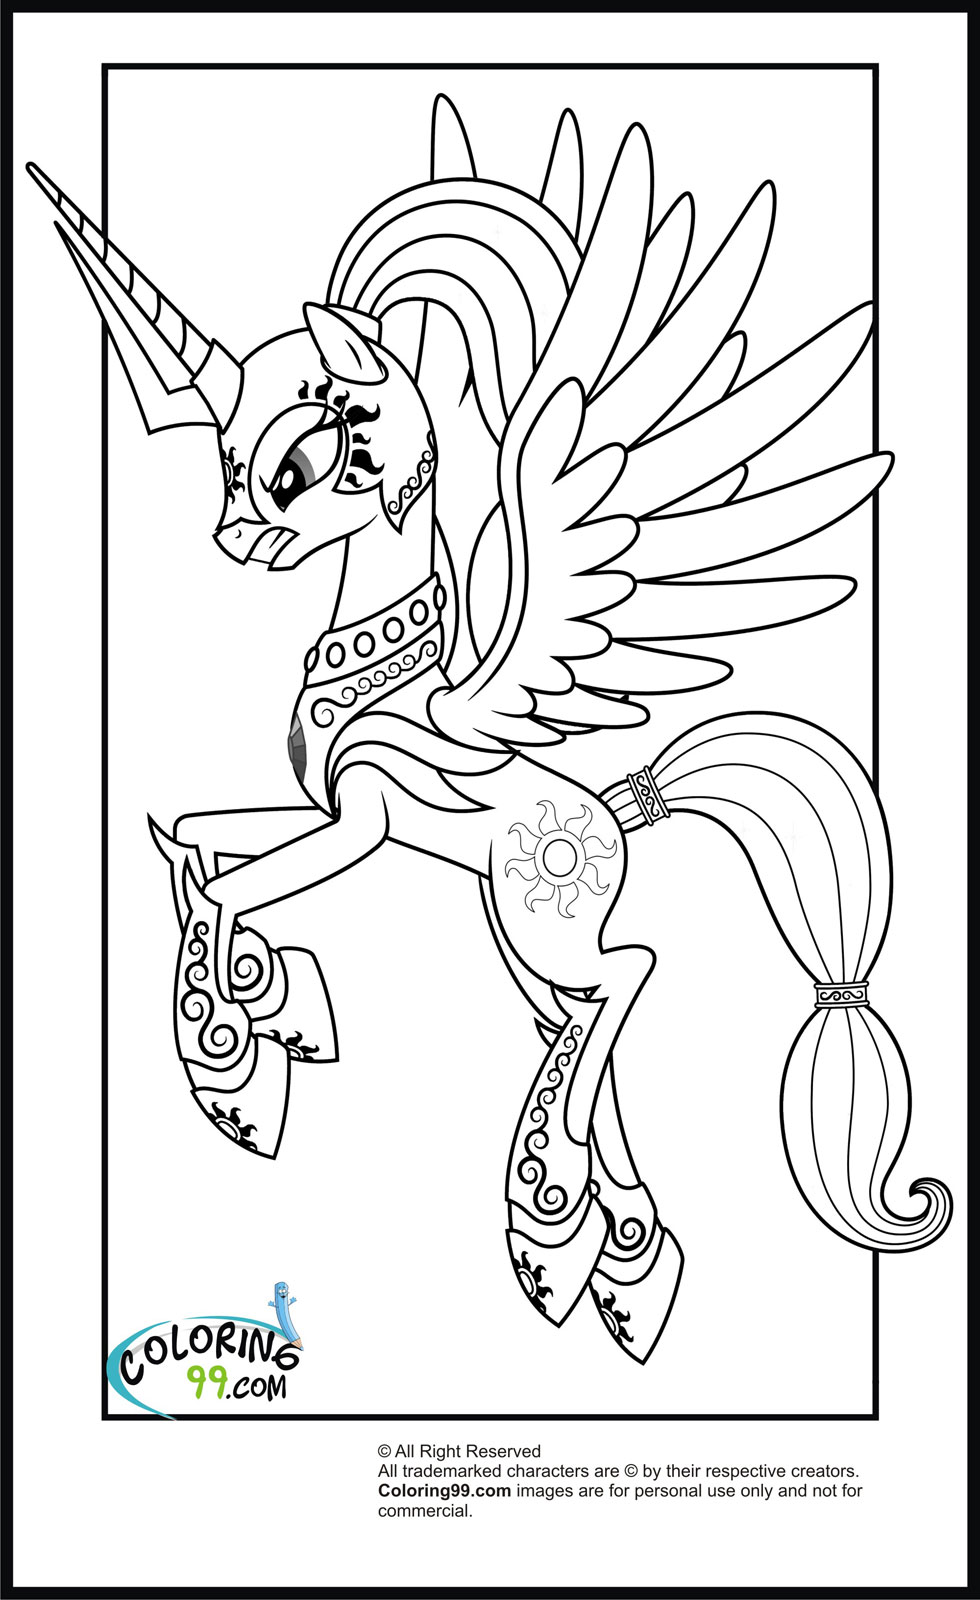 mlp colouring my little pony coloring pages printable activity shelter mlp colouring 1 1